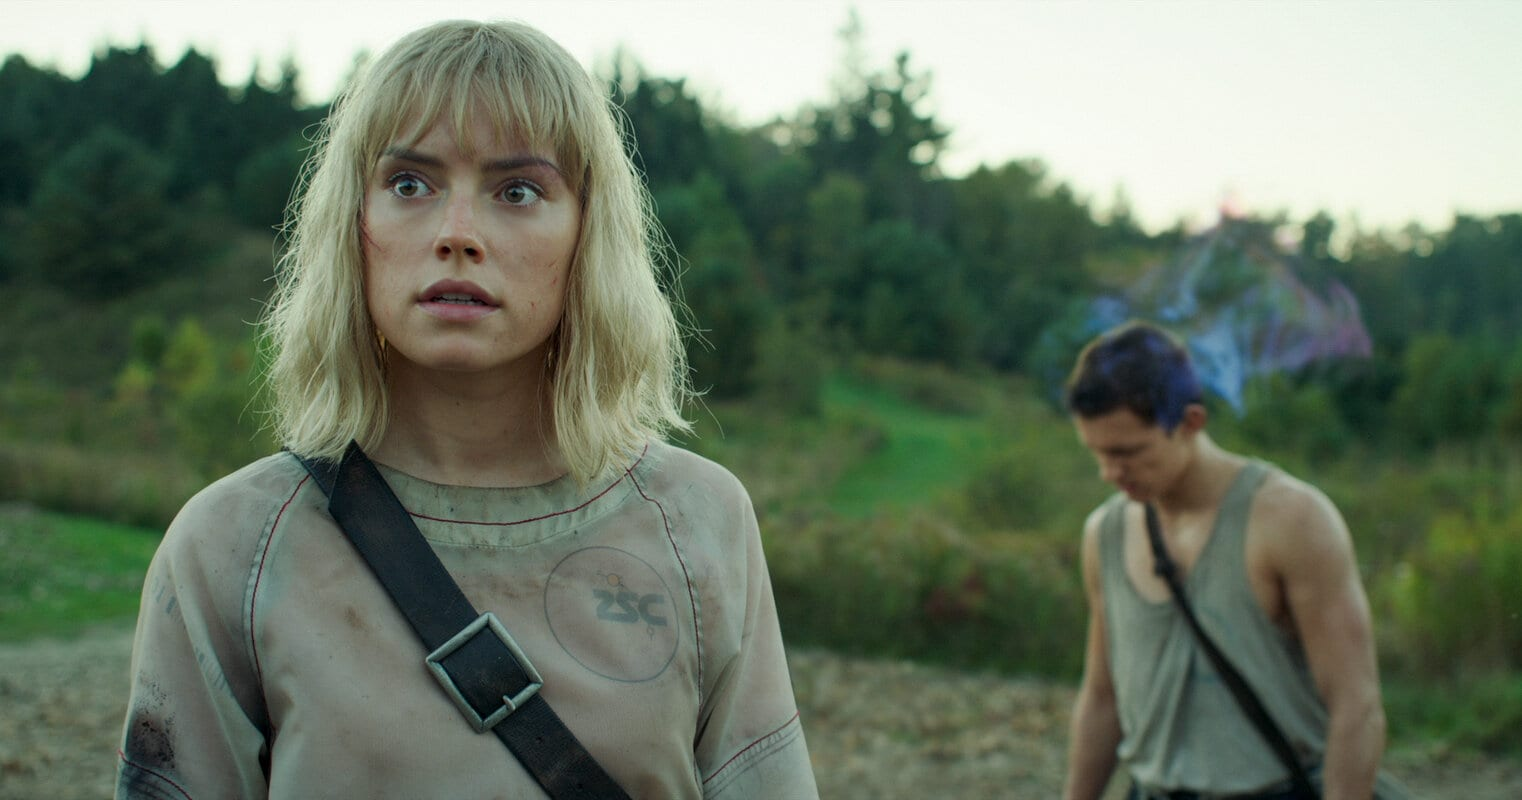 How To Watch Chaos Walking? Is The Movie on Netflix?